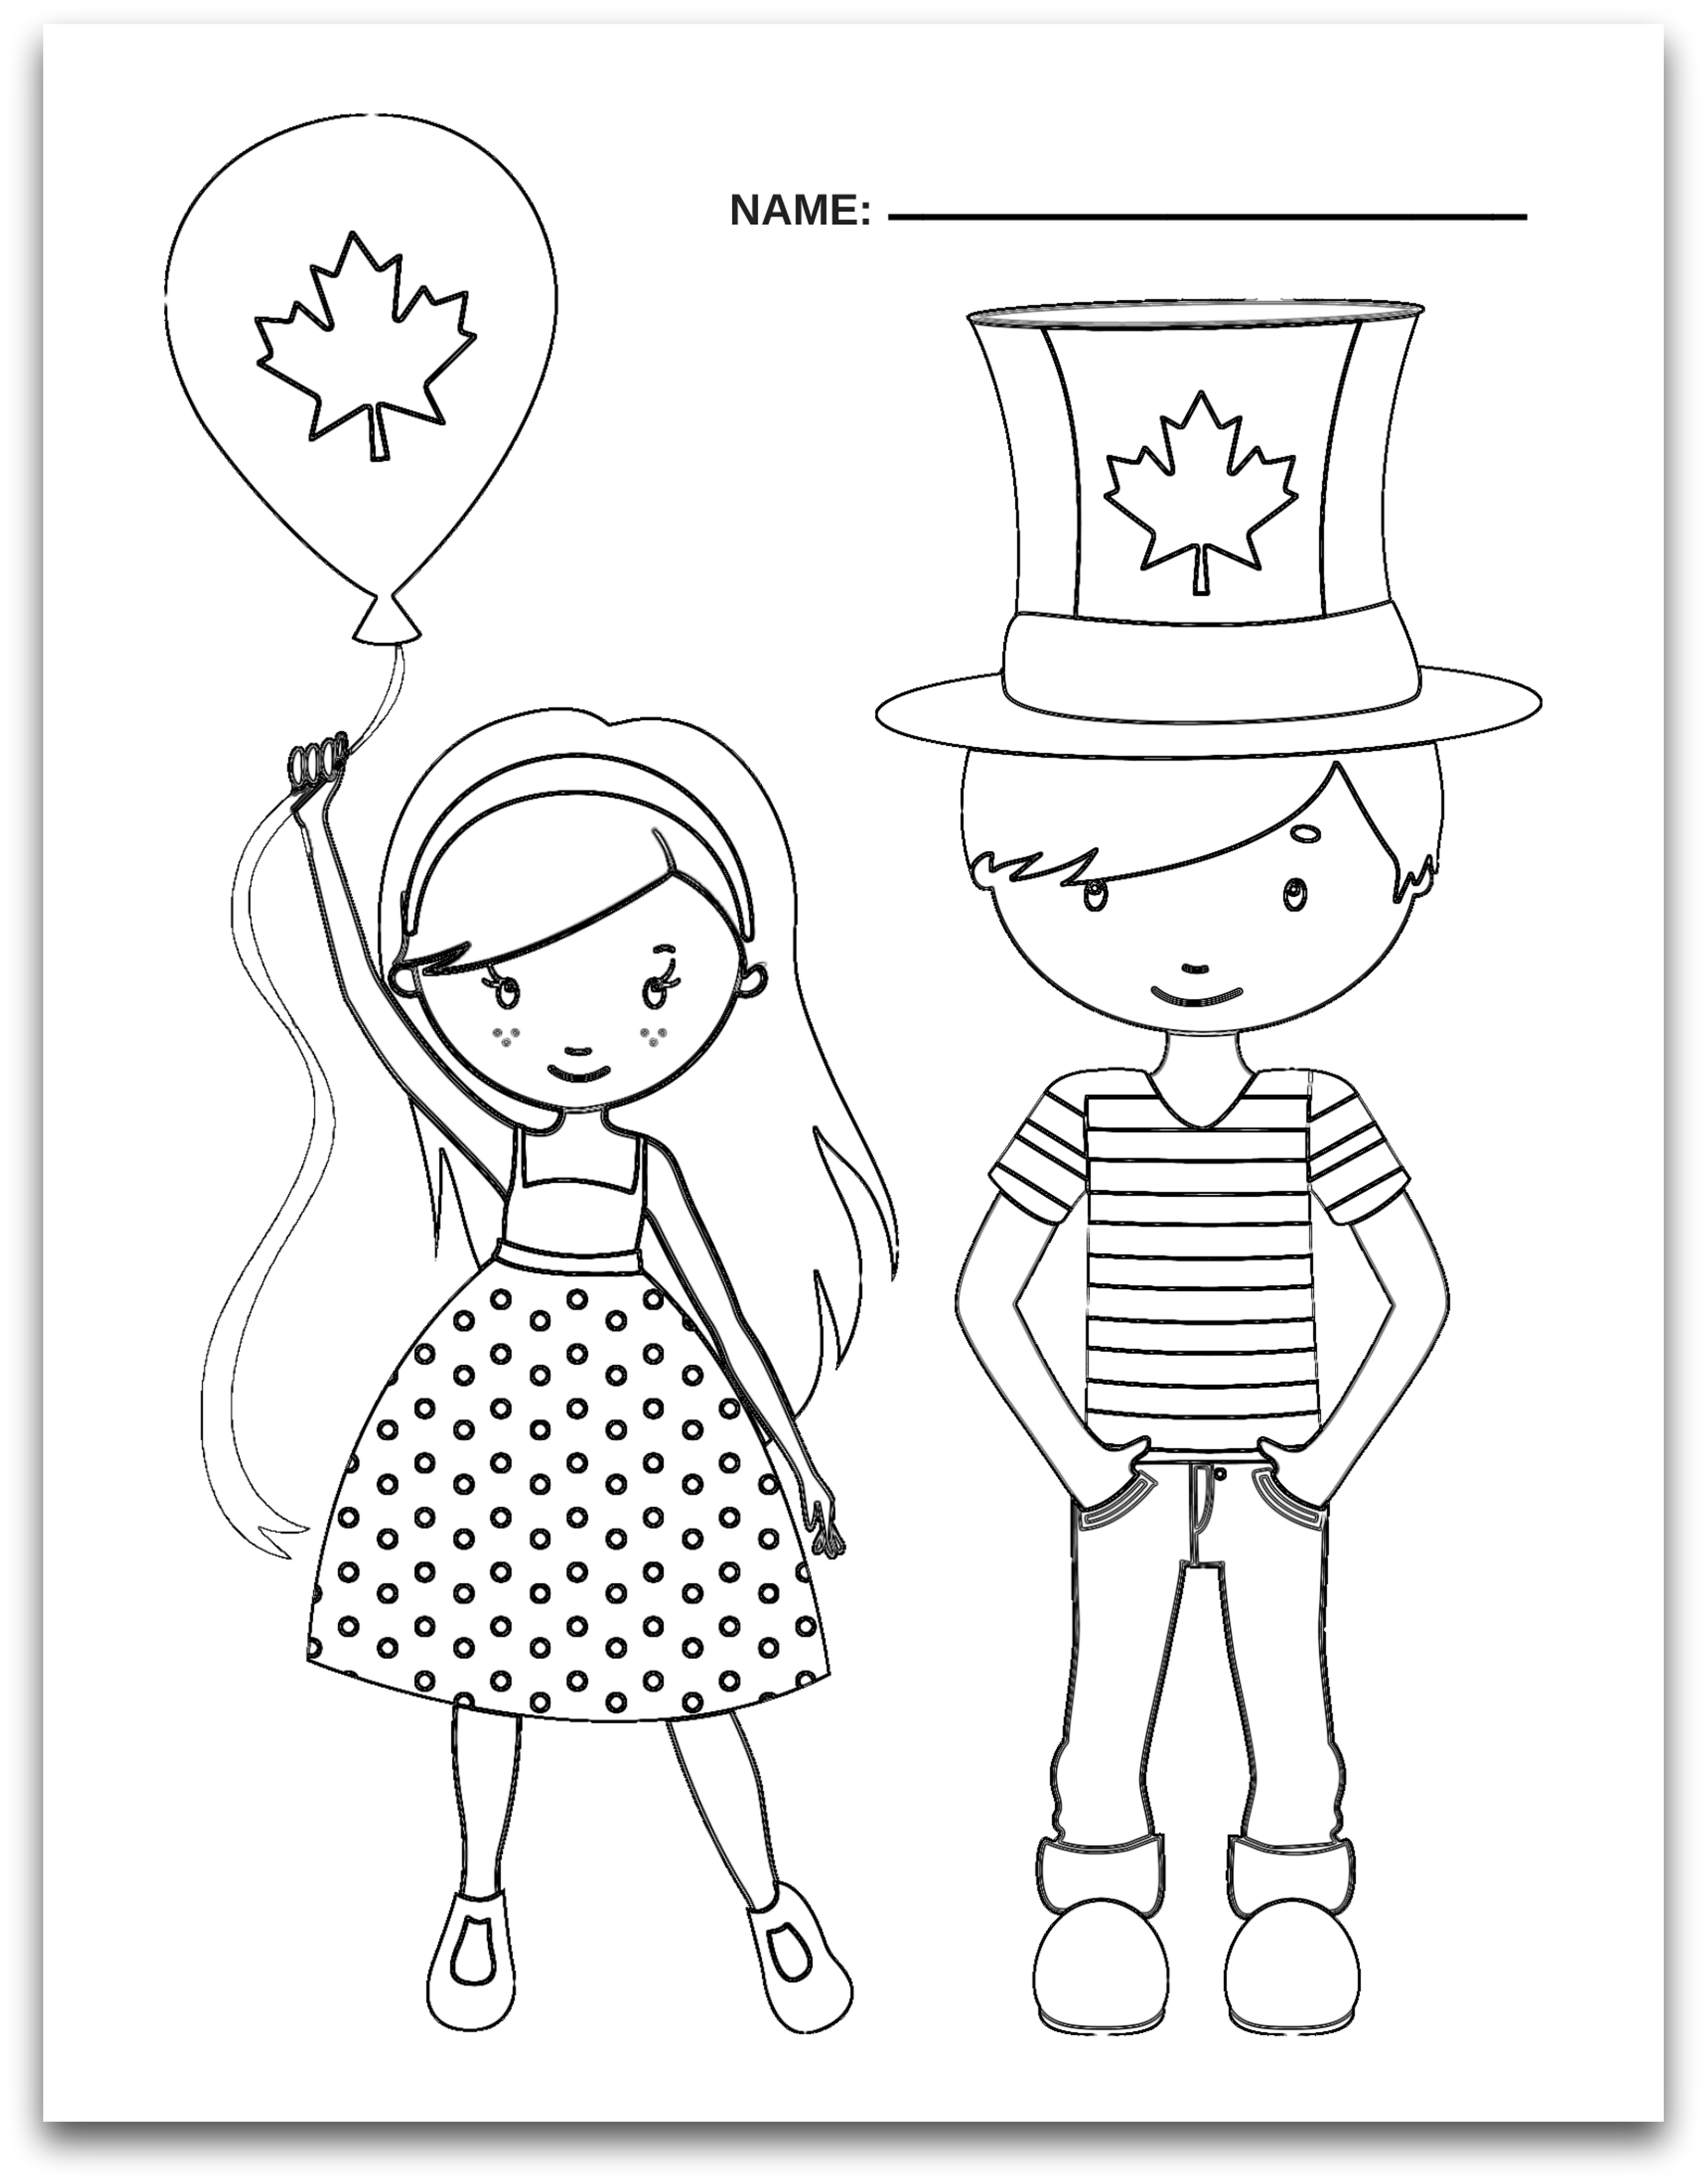 canada coloring pages canada coloring pages to download and print for free coloring pages canada